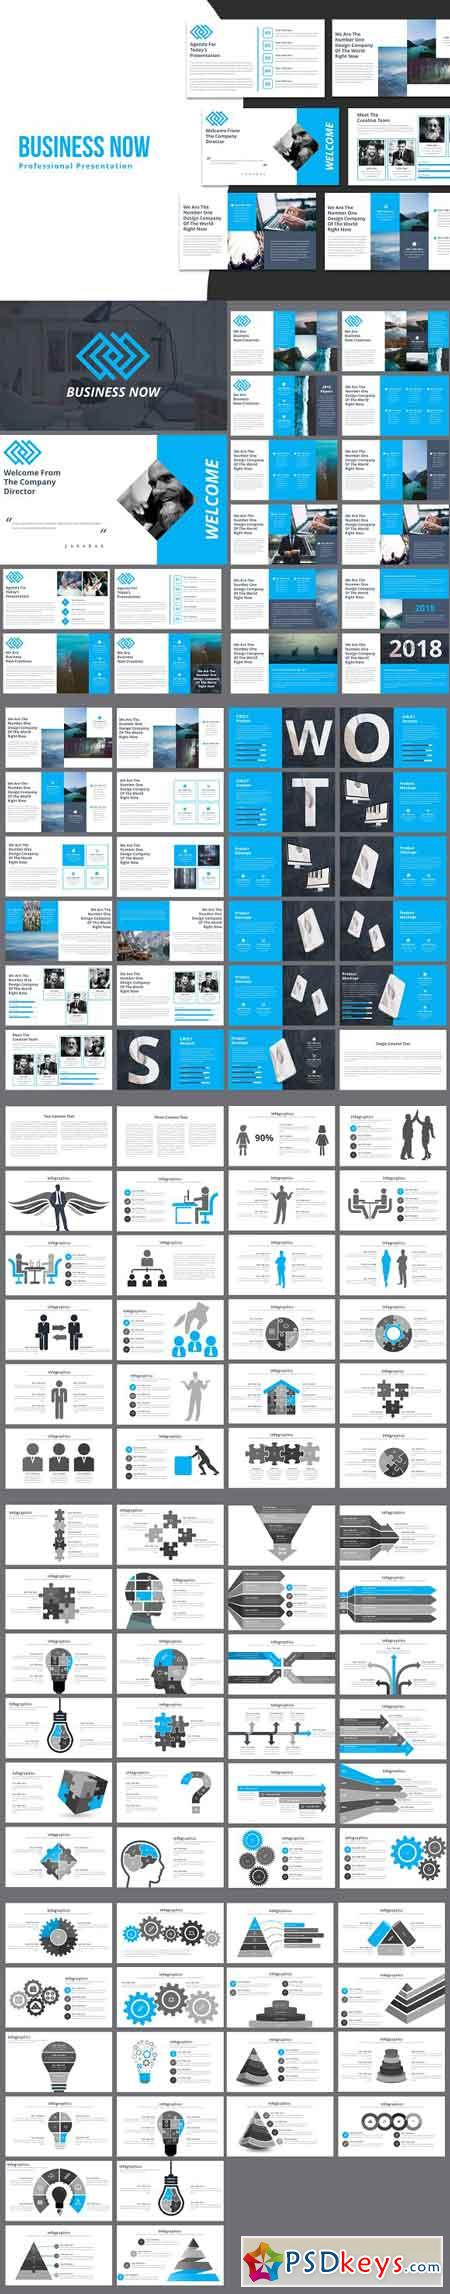 Business Now Powerpoint Template 2967679